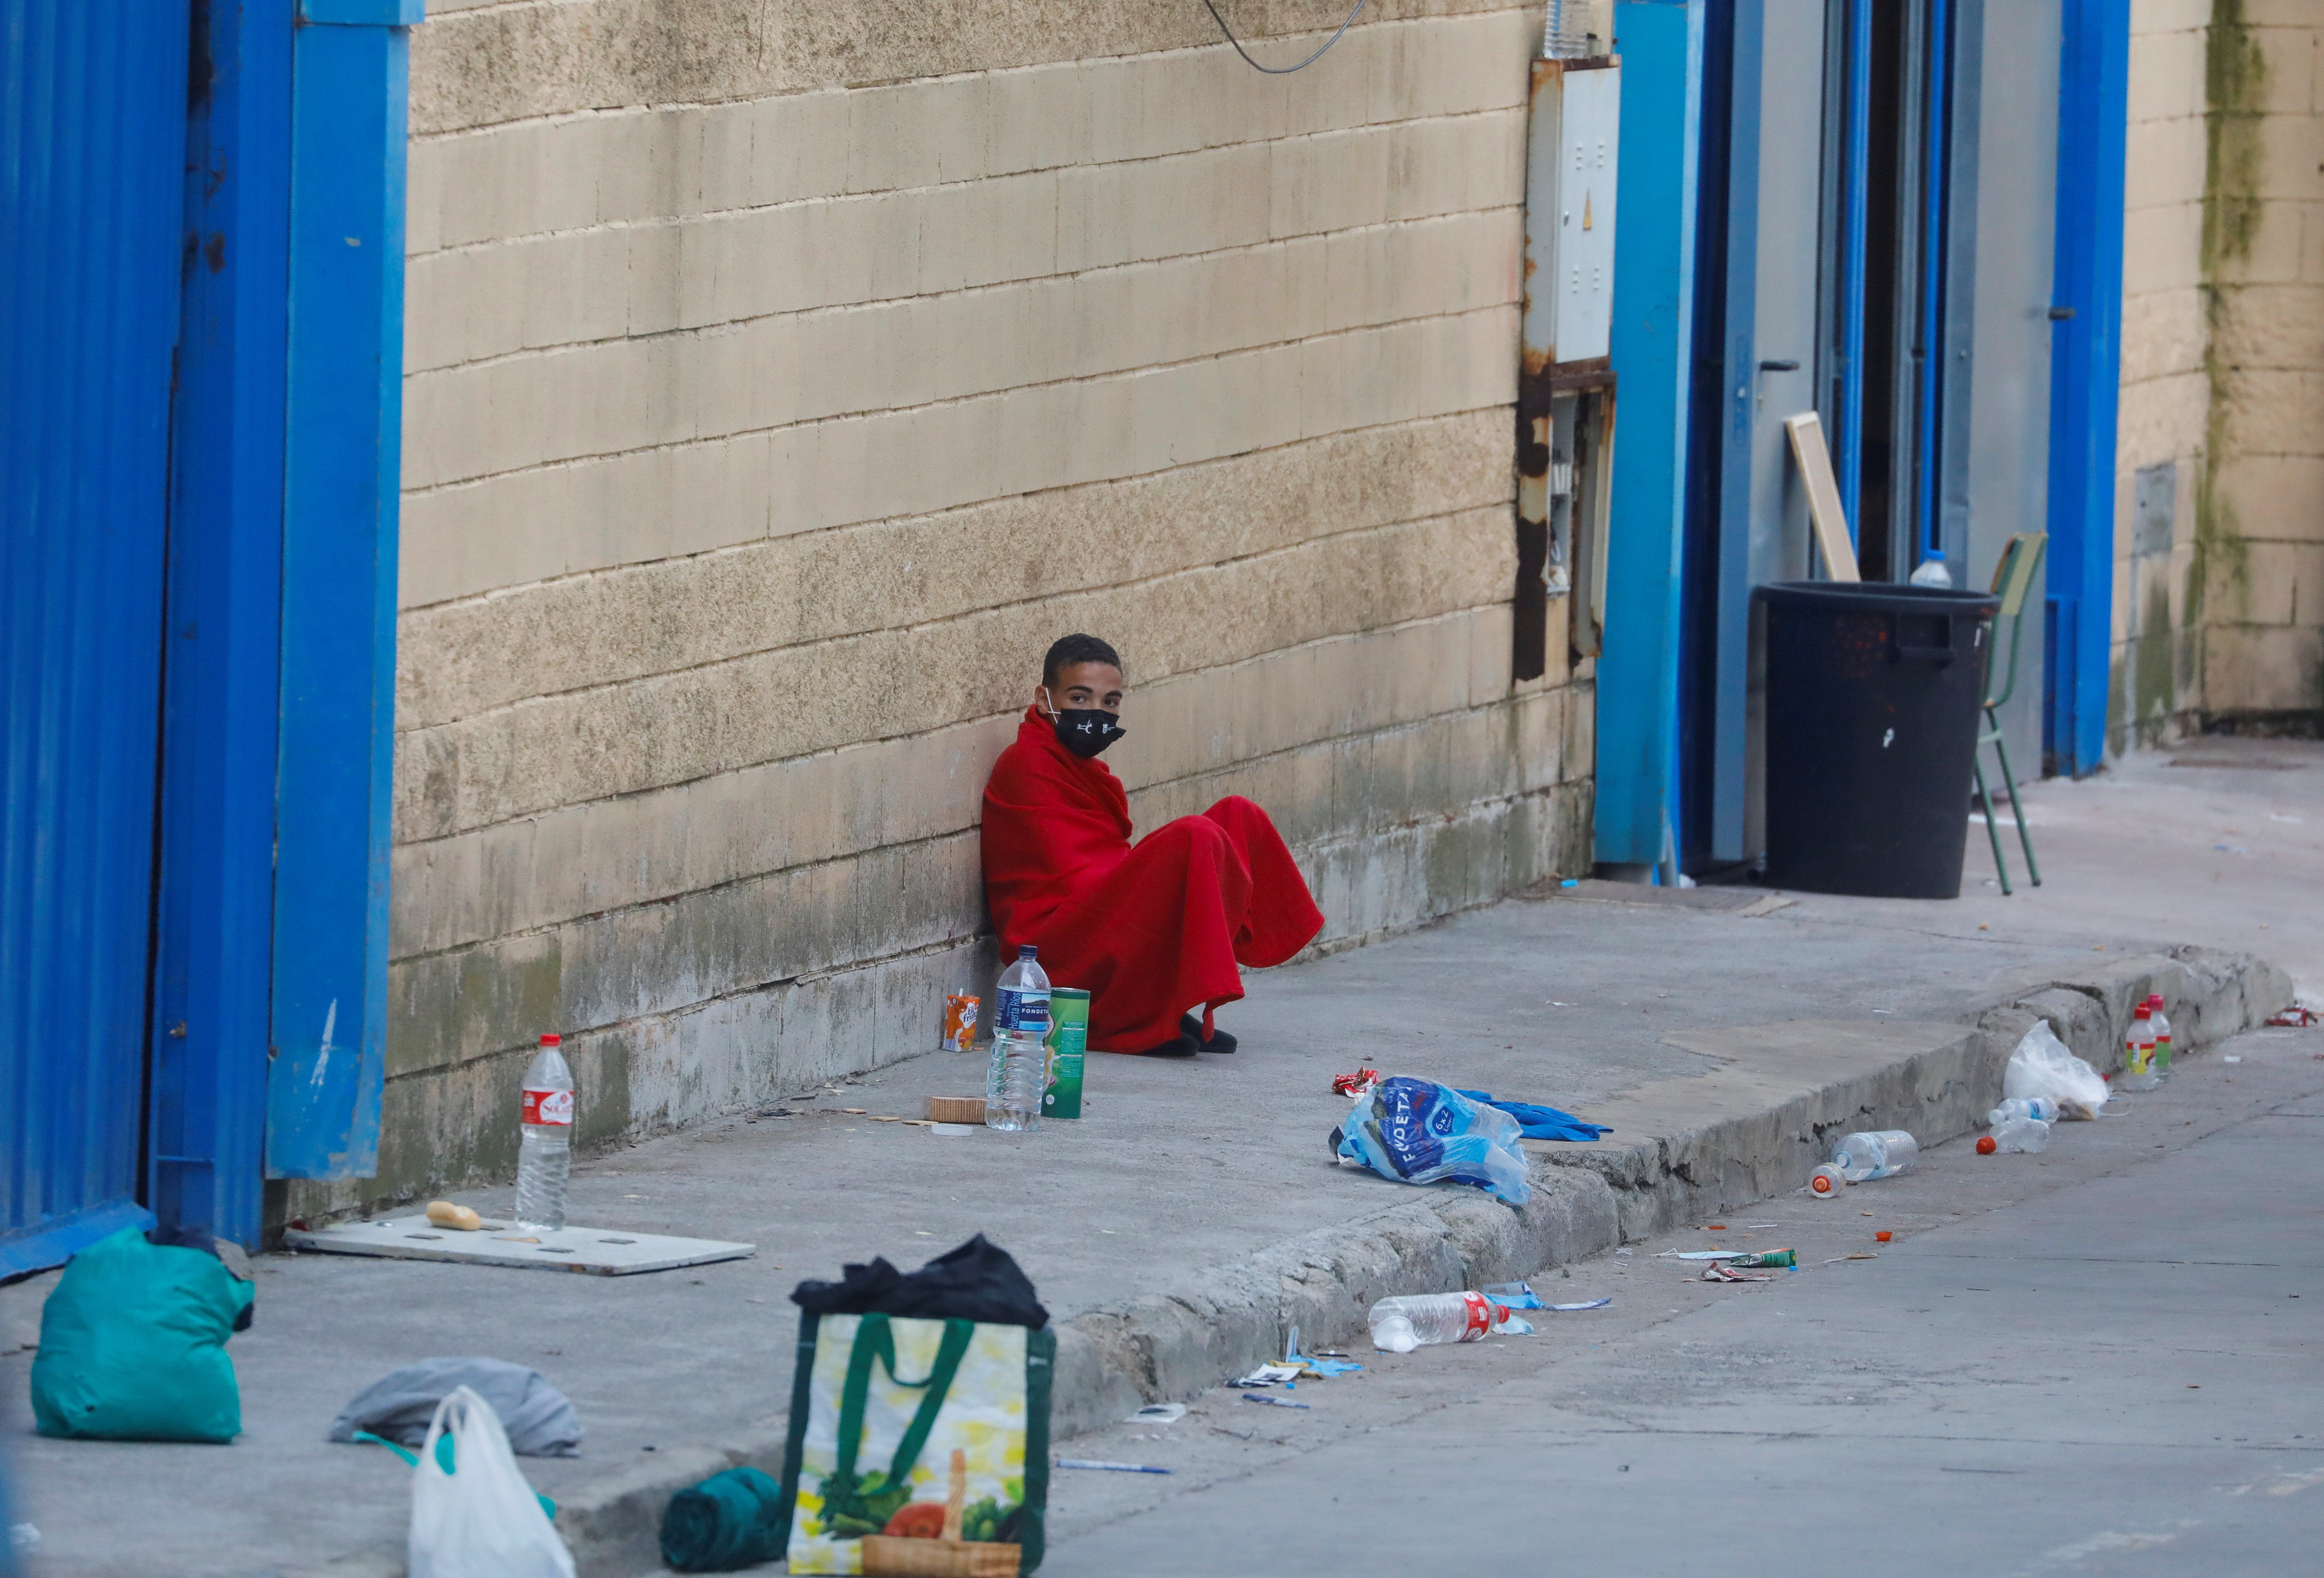 A Moroccan minor sits next to a facility prepared for migrants, after thousands of them swam across the Spanish-Moroccan during the last days, in Ceuta, Spain, May 20, 2021. REUTERS/Jon Nazca